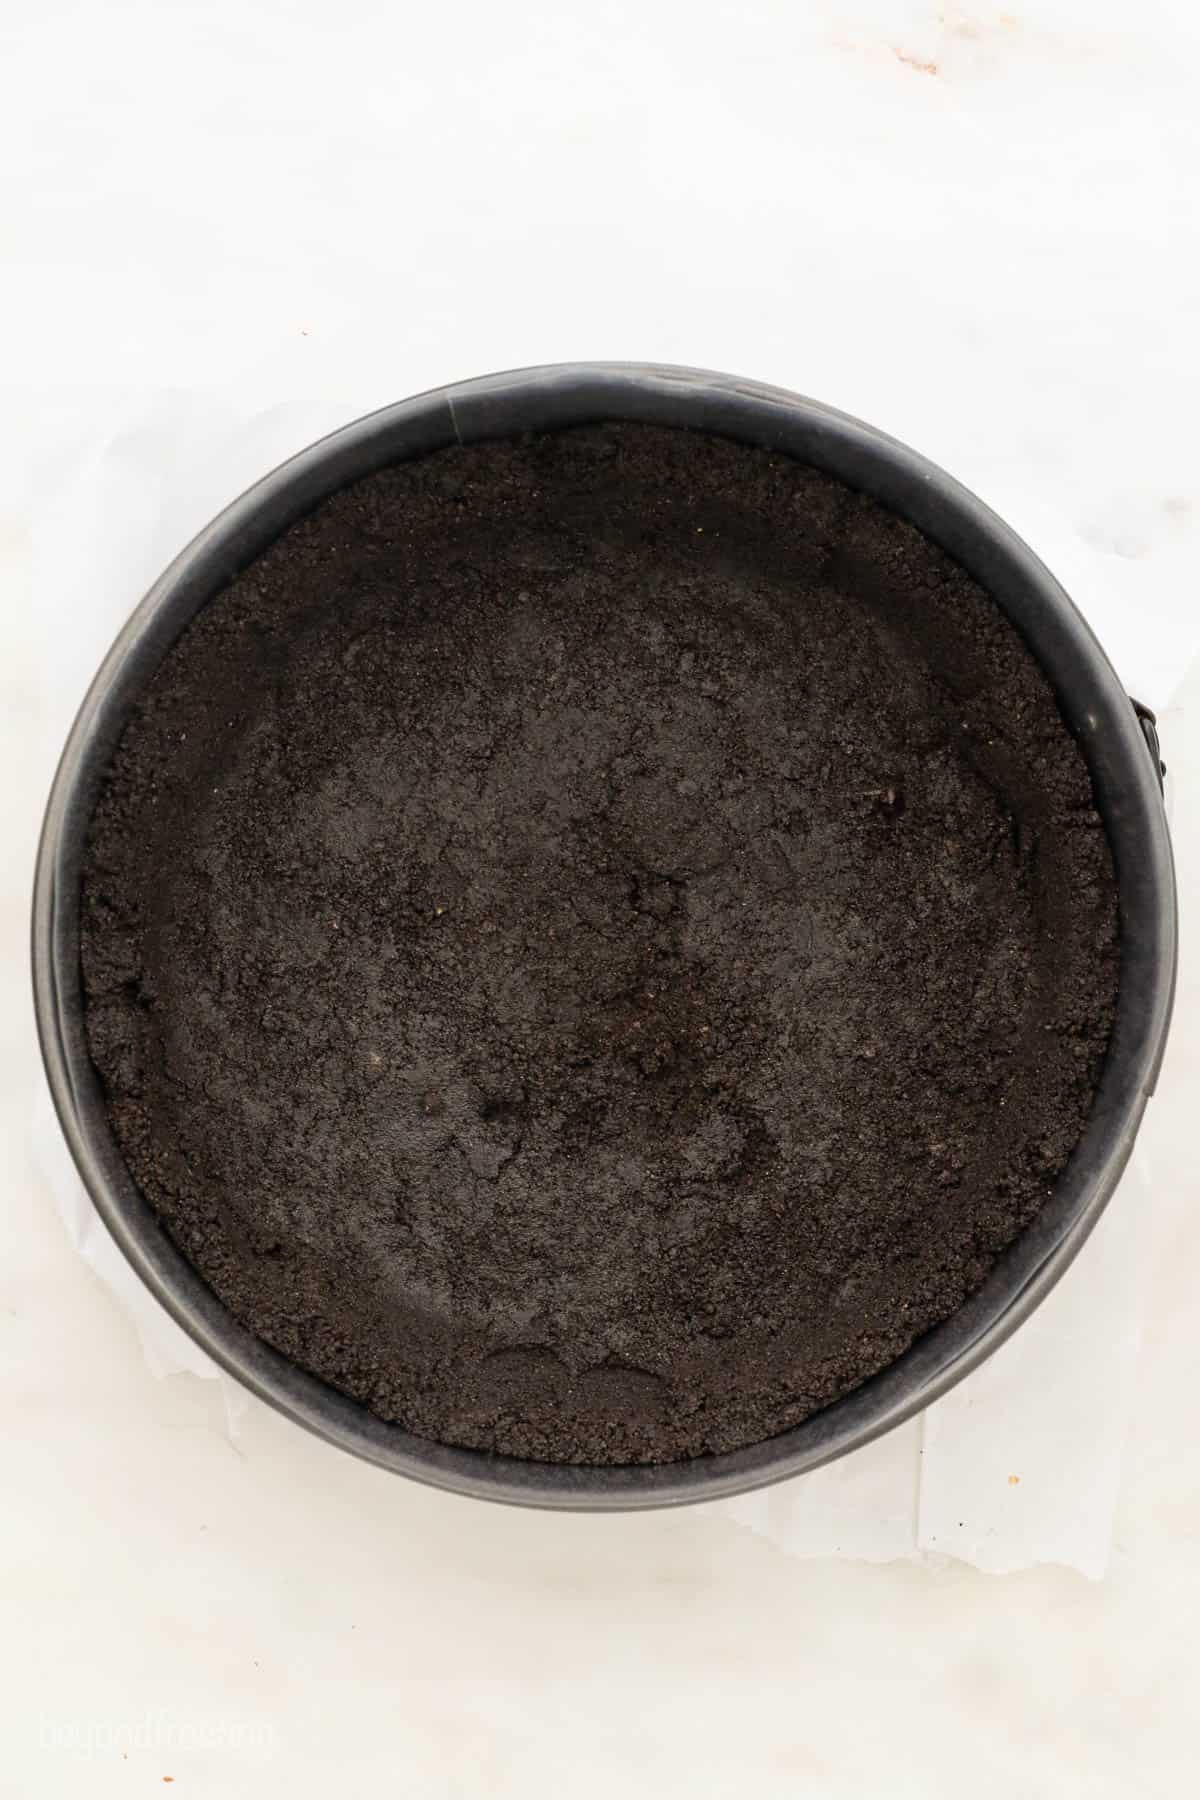 A Bird's Eye View of an Oreo Cookie Crust Pressed Into a springform pan